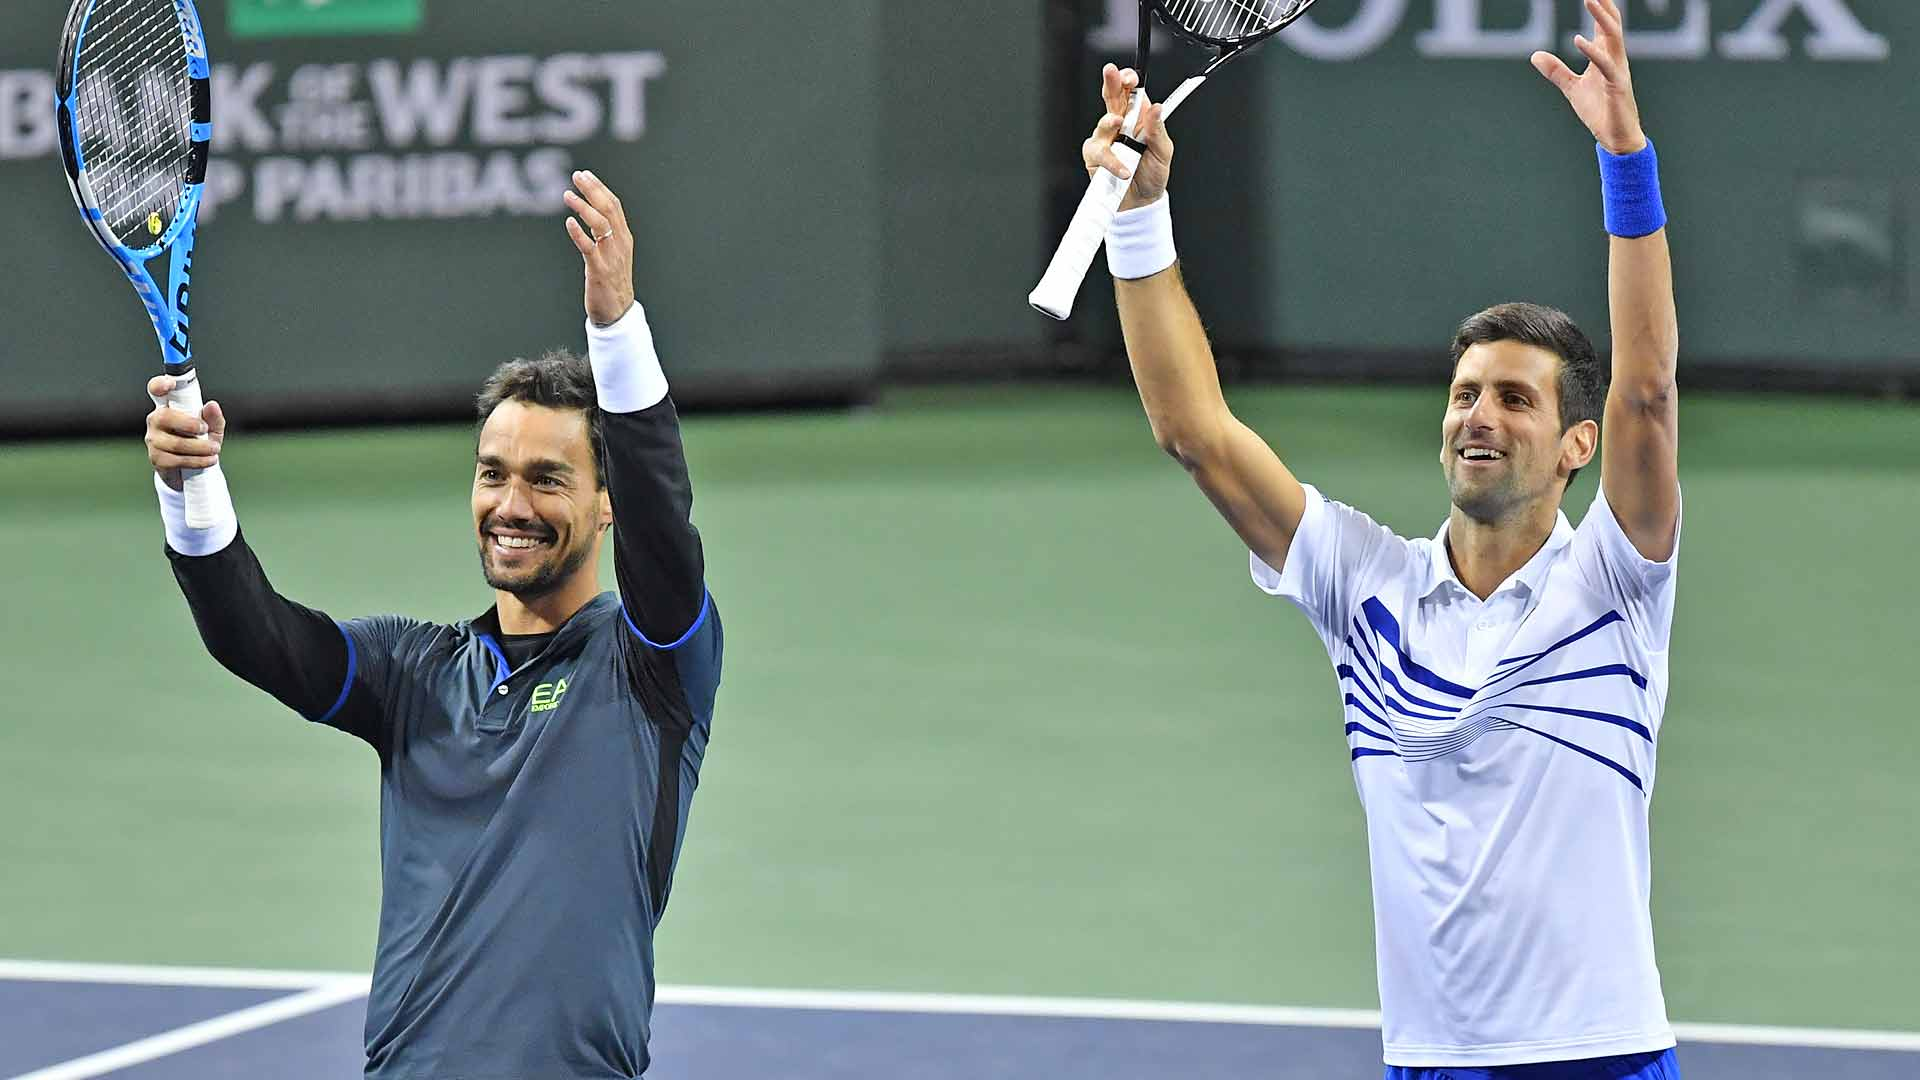 Novak Djokovic keen to turn the page after Indian Wells exit